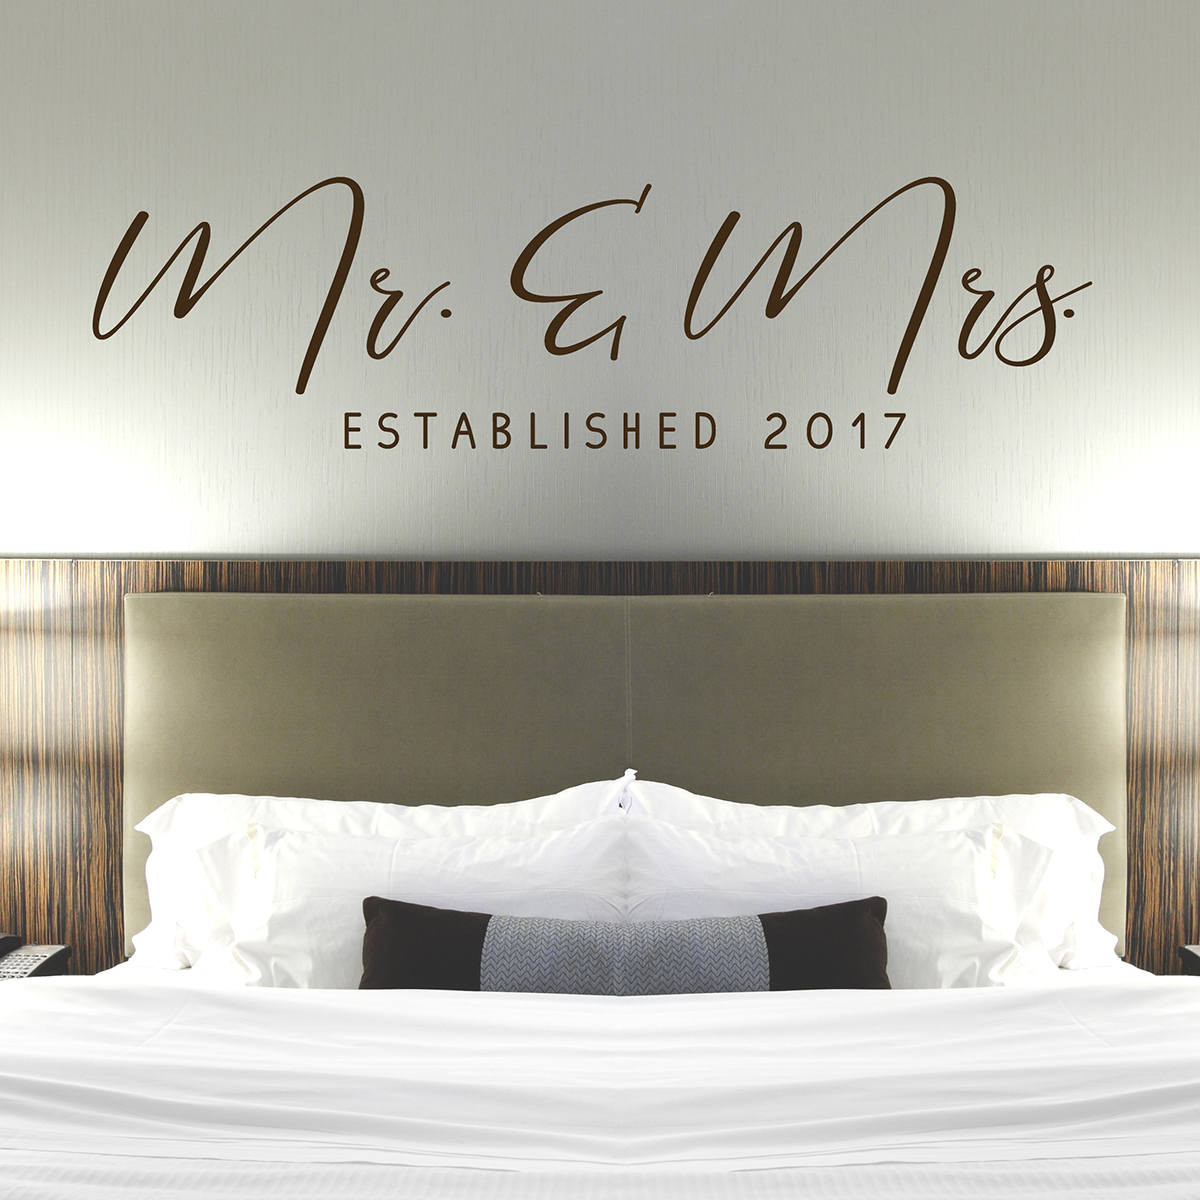 Mr & Mrs Wall Decal - Master Bedroom Wall Decor - Established Date ...